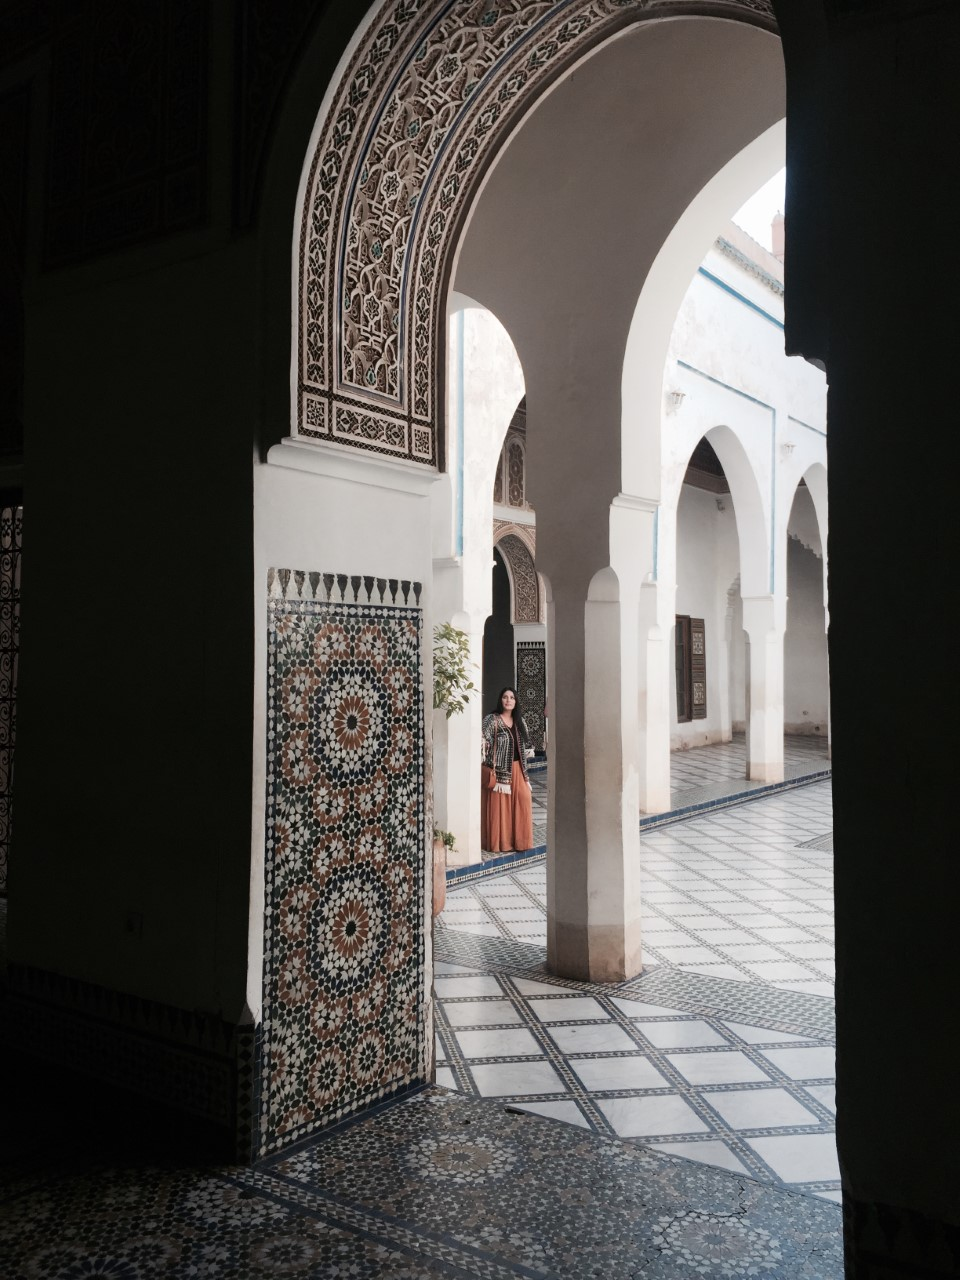 BAHIA PALACE - The Bahia Palace, meaning brilliance in Arabic, is perhaps one of the best-preserved historical sites and certainly most interesting in Marrakech.